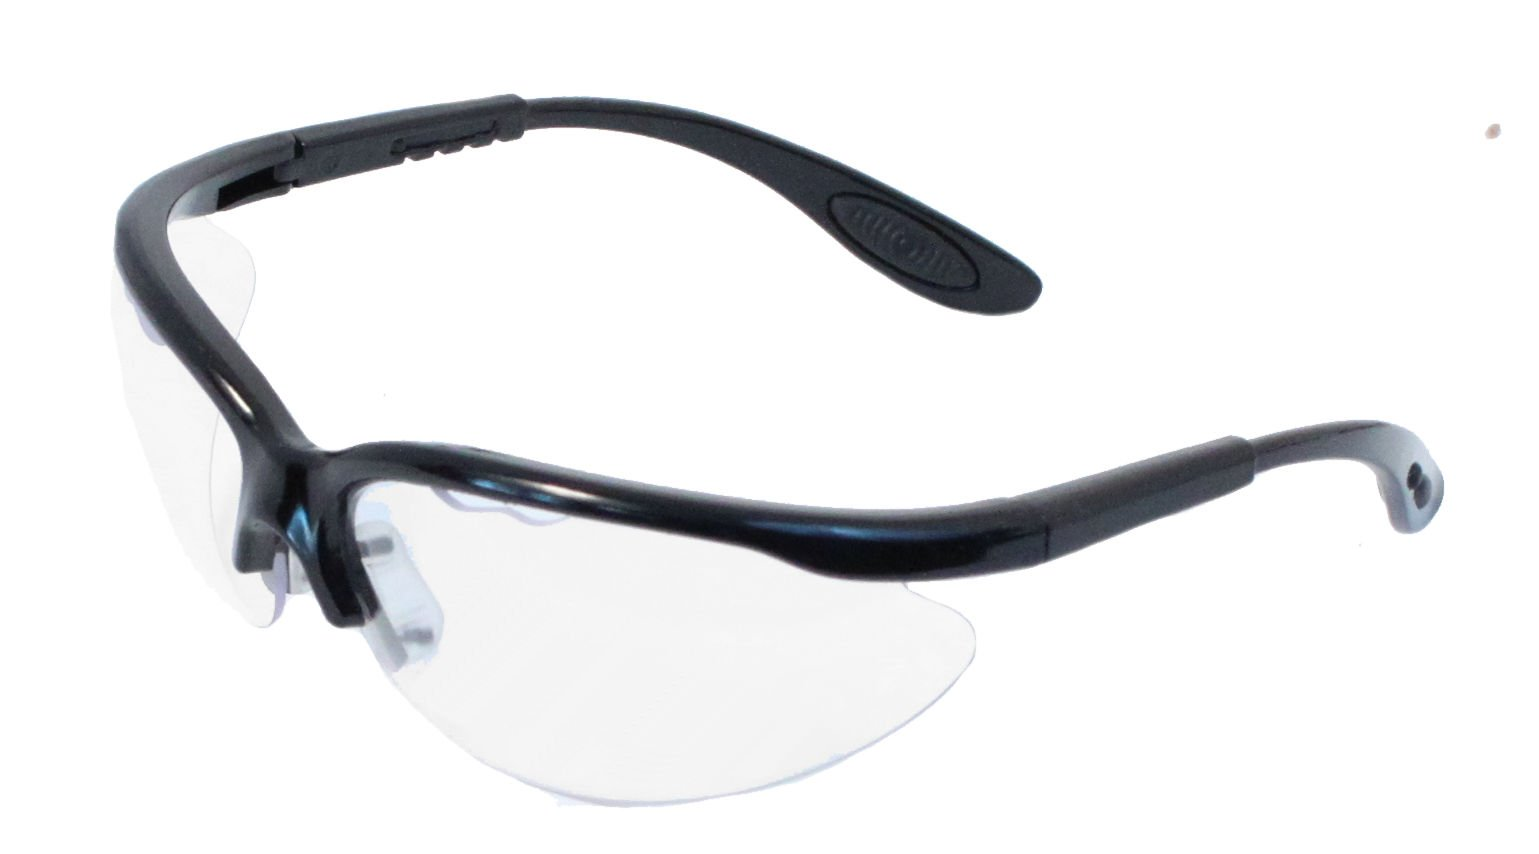 cdfa6f7d3e6 Python Xtreme View Protective Racquetball Eyeguard (Eyewear) Black   White  Available product image